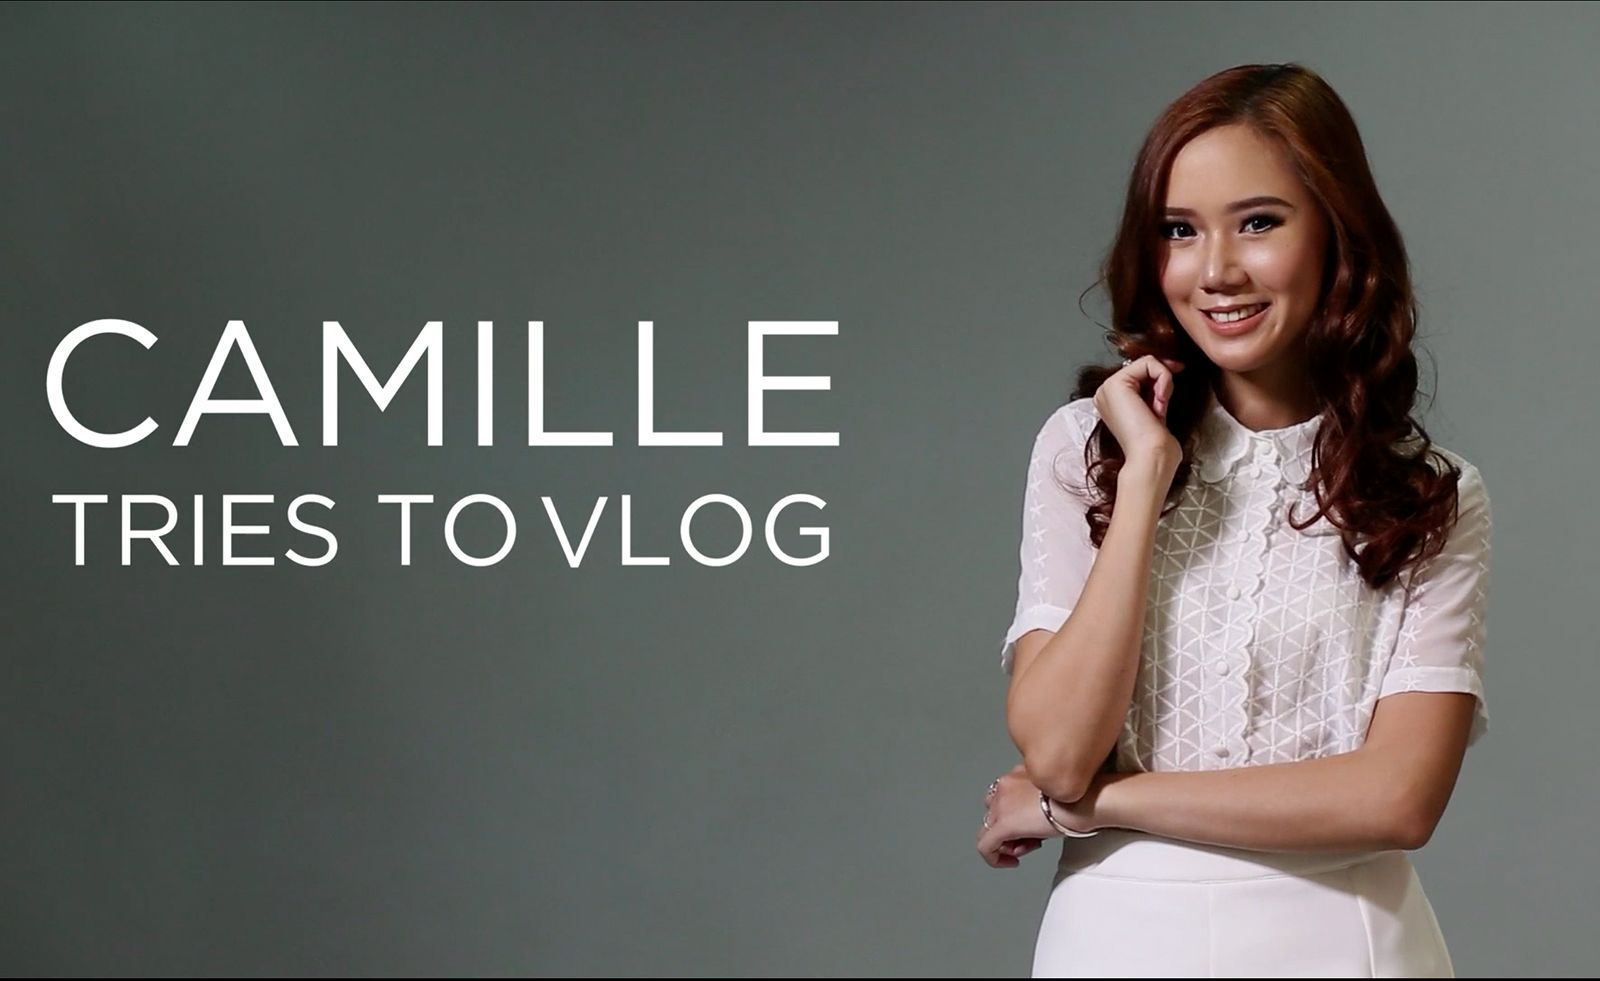 Camille Tries To Vlog - www.itscamilleco.com